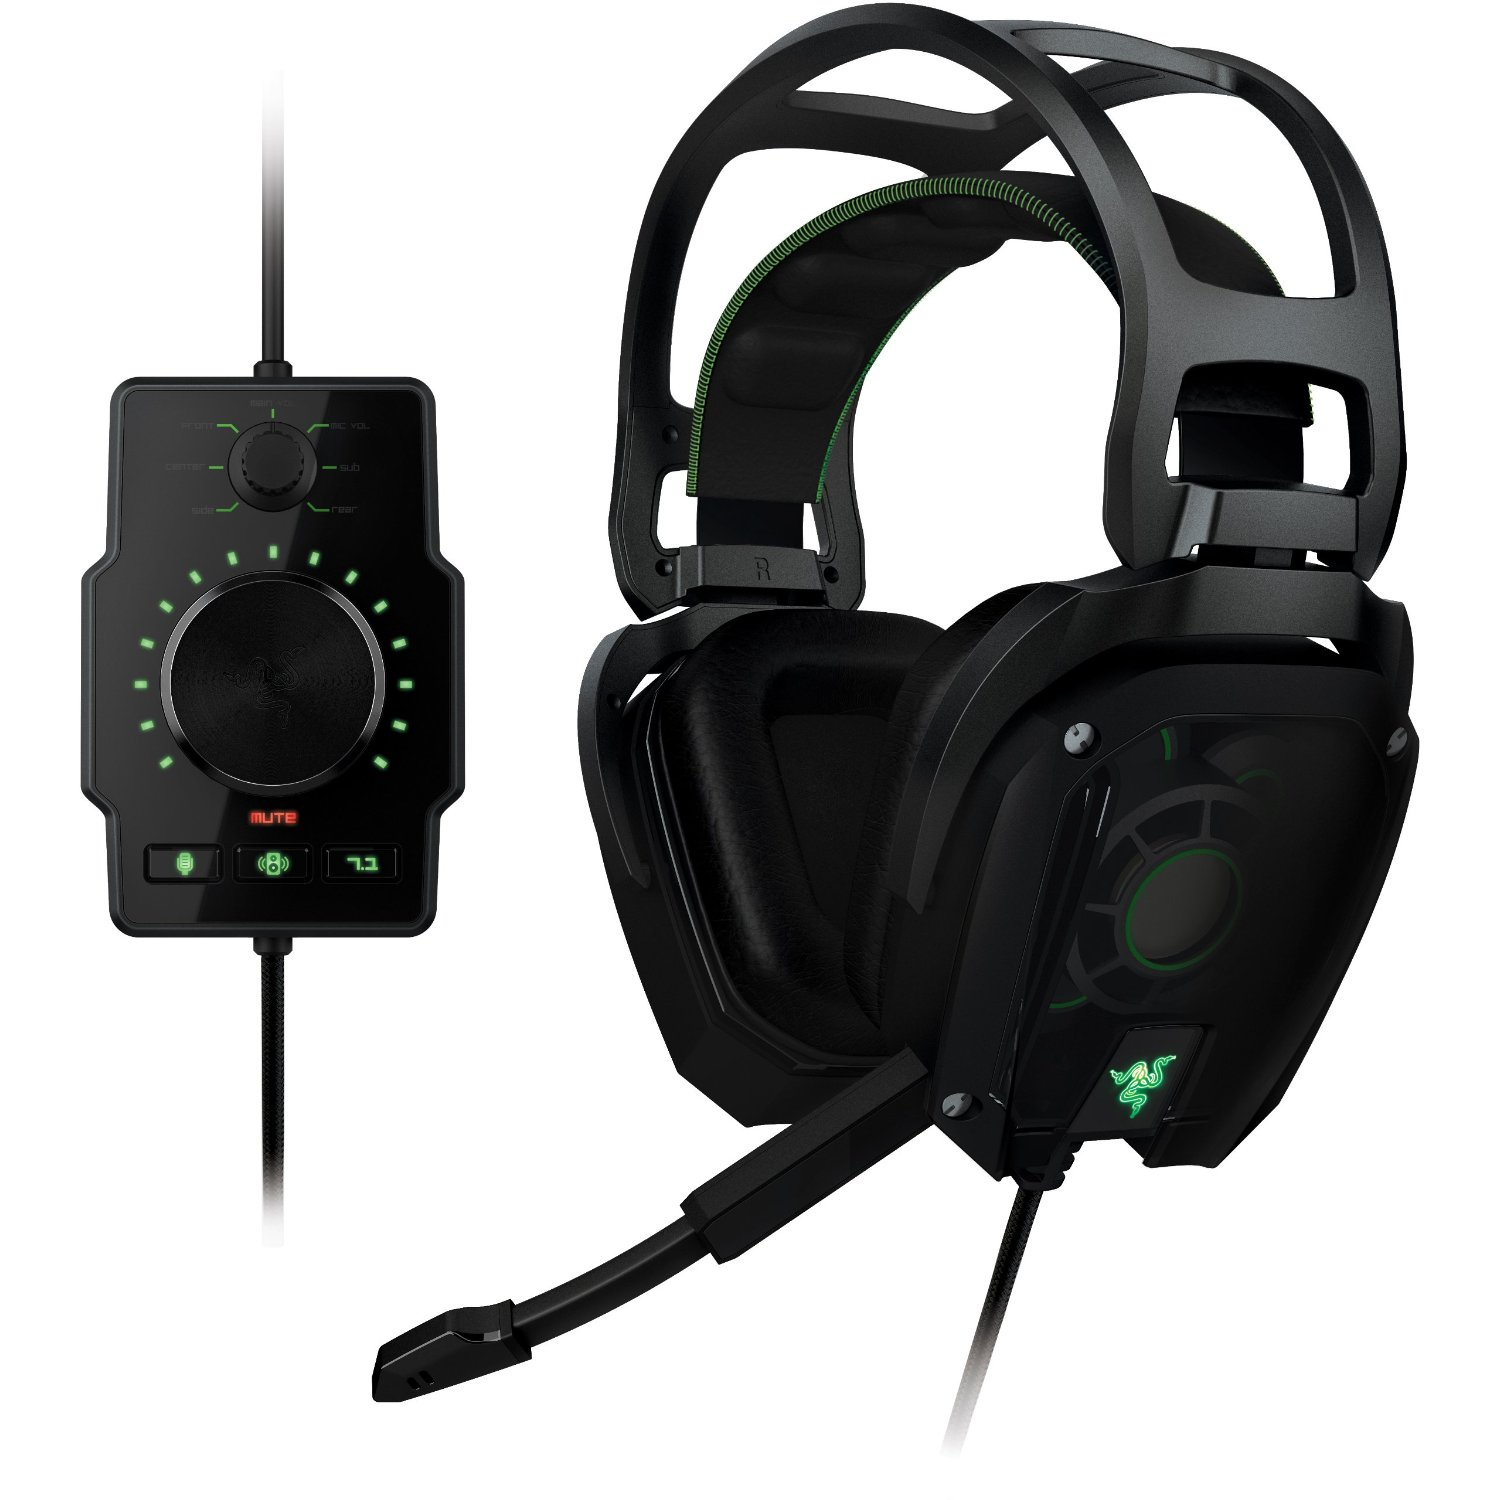 Razer Tiamat 7.1 Gaming Headset Review | Gaming Headsets FTW